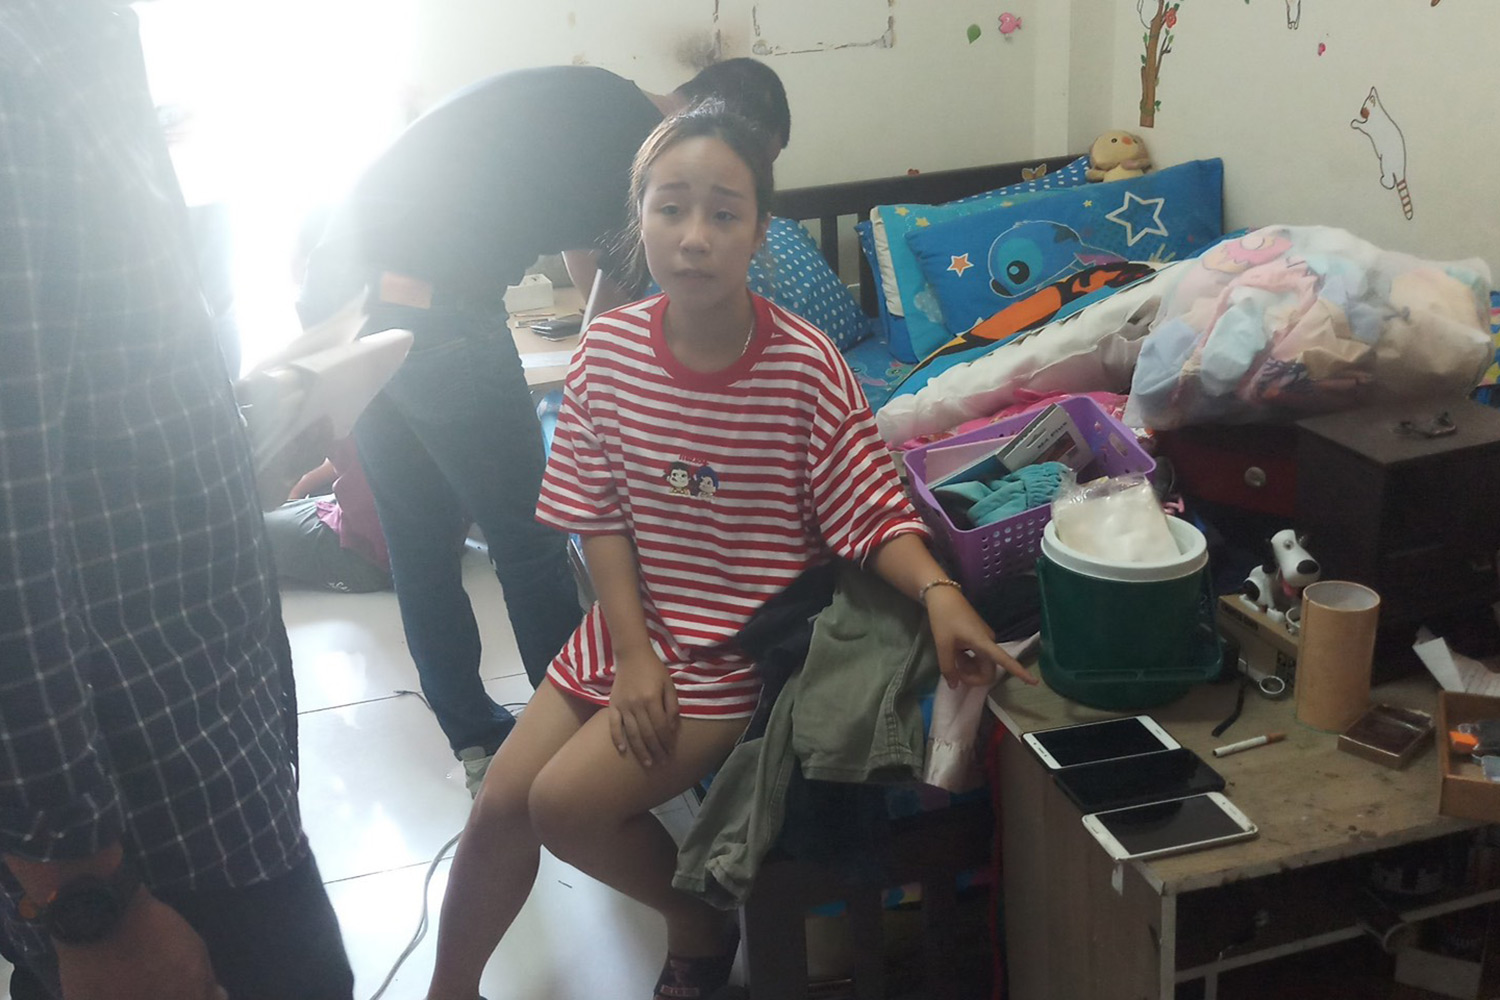 Naruemol Lamperngmee, 19, who allegedly used hacked Facebook and Line accounts of others to dupe more than 100 online users into transferring money to her is caught in Min Buri district, Bangkok. (Supplied photo via Wassayos Ngamkham)